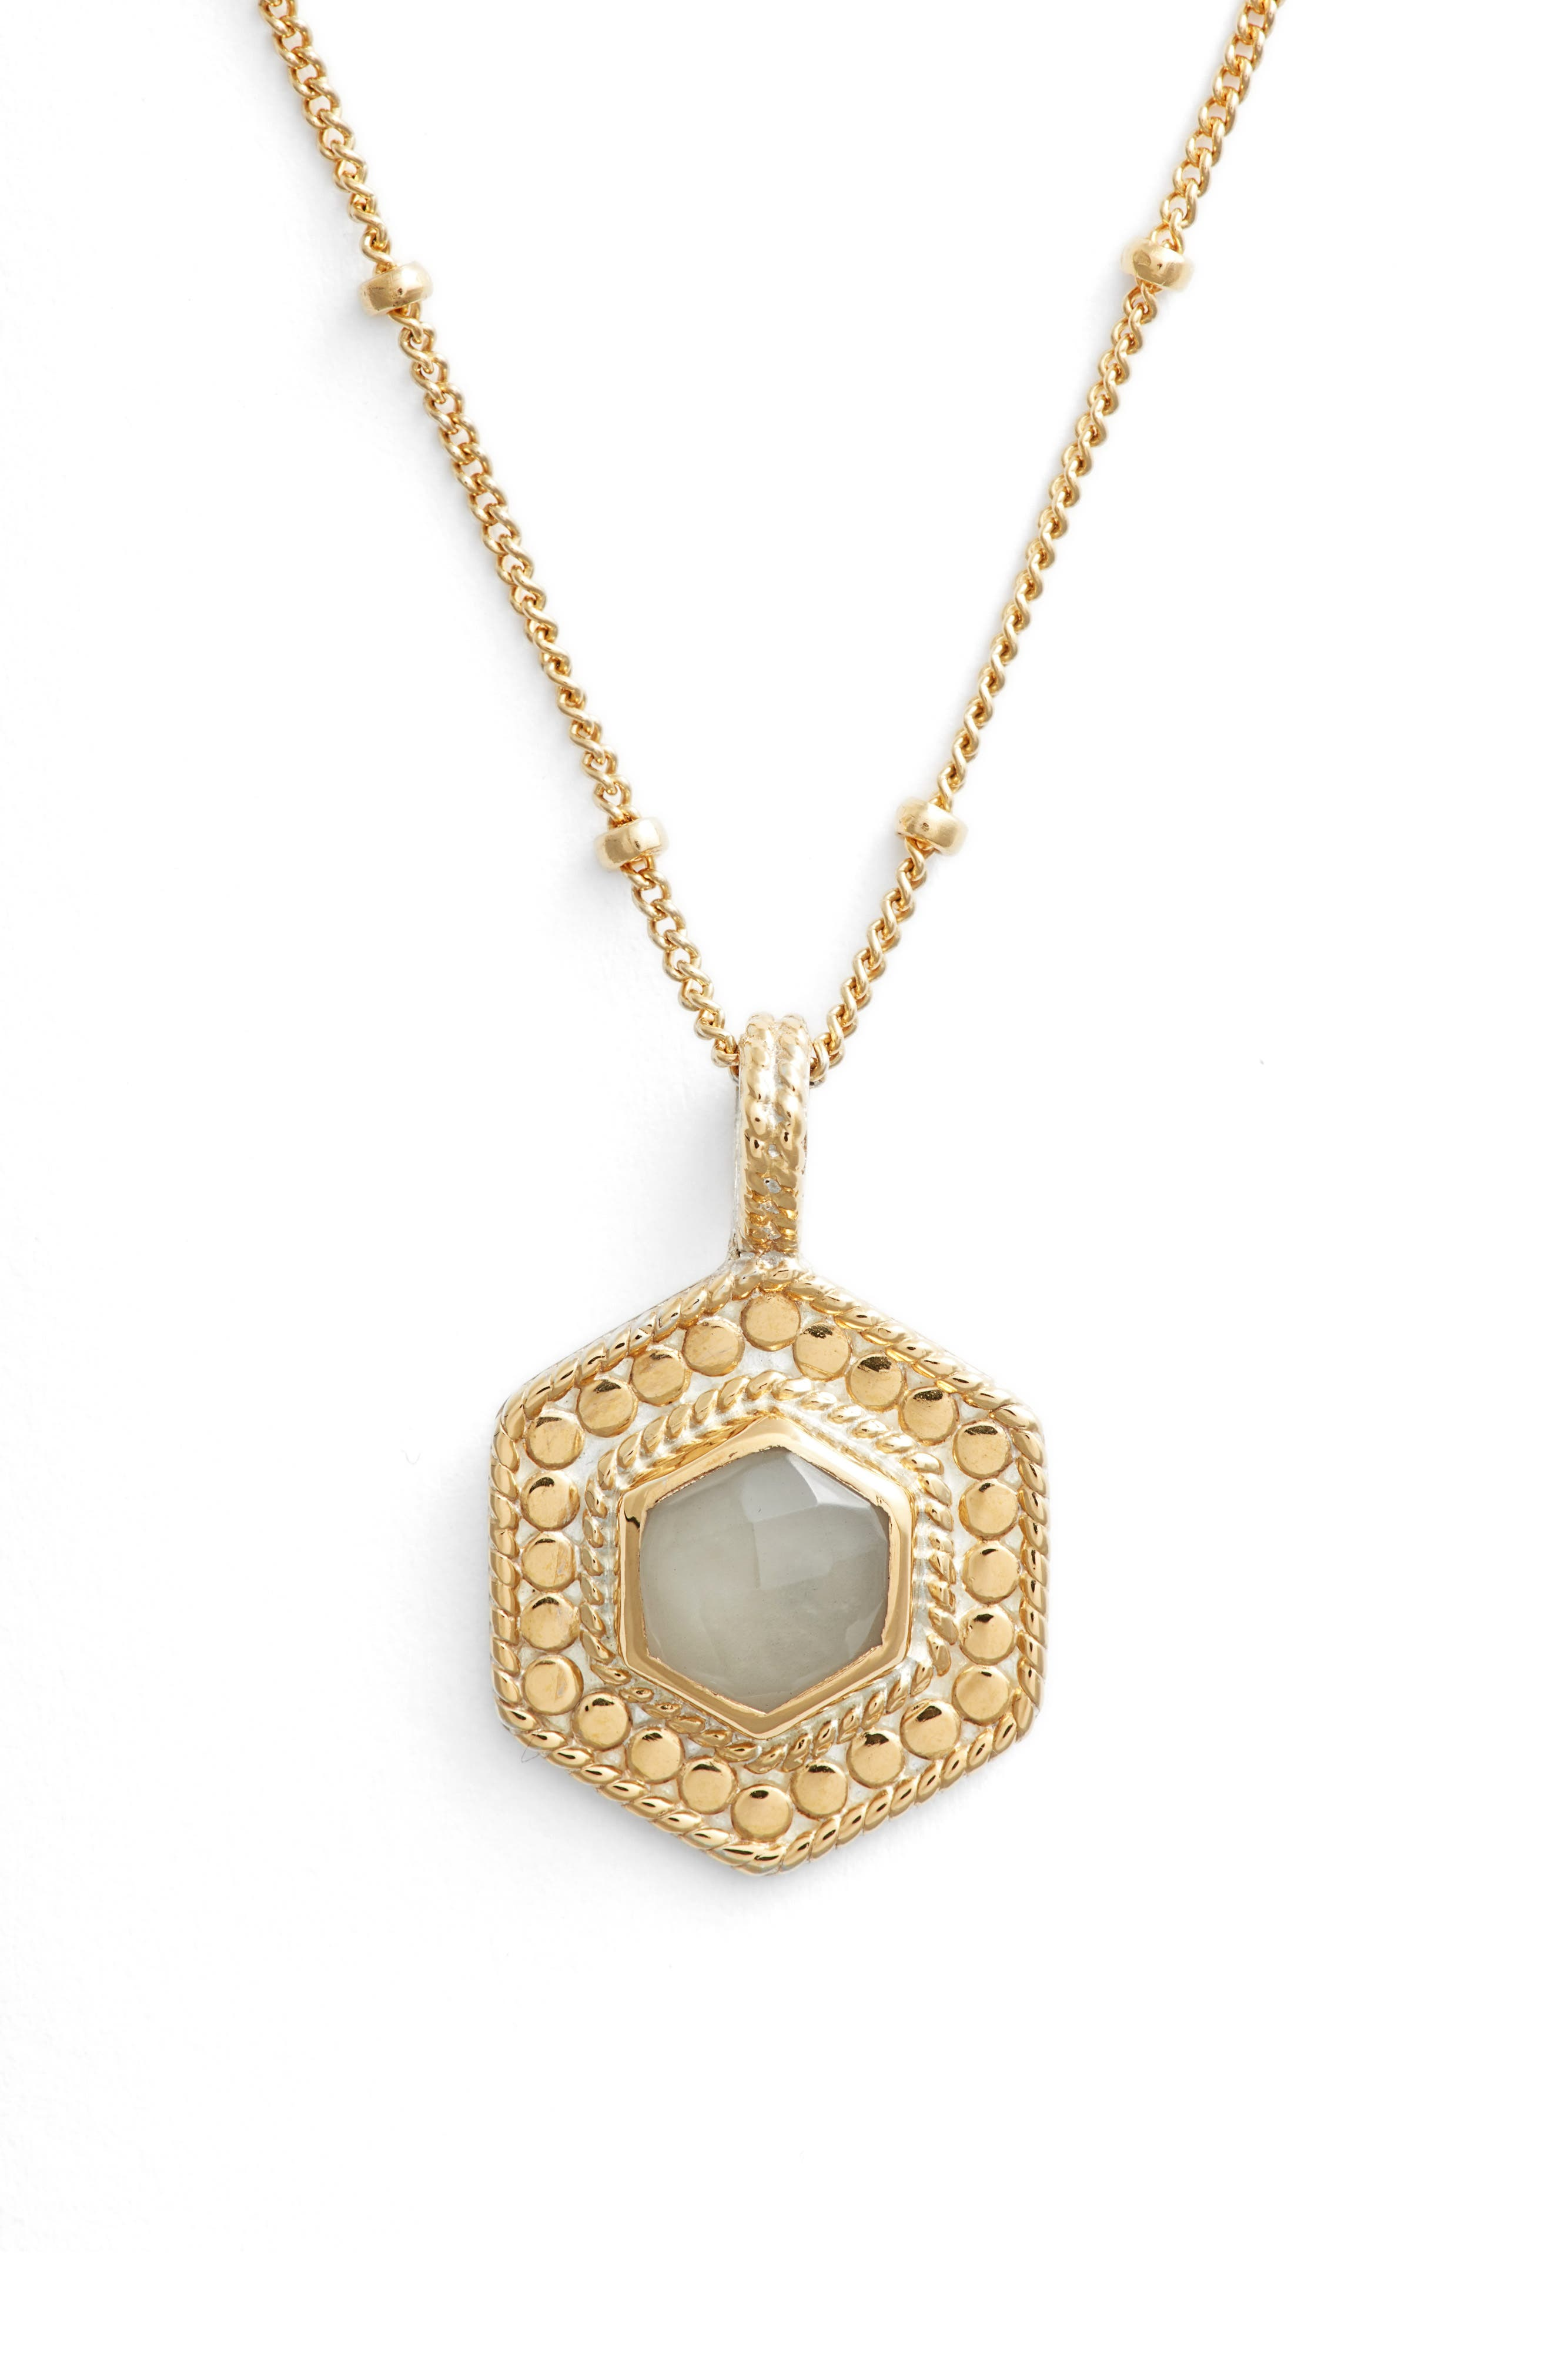 Grey Moonstone Hexagon Pendant Necklace,                             Main thumbnail 1, color,                             GOLD/ GREY MOONSTONE